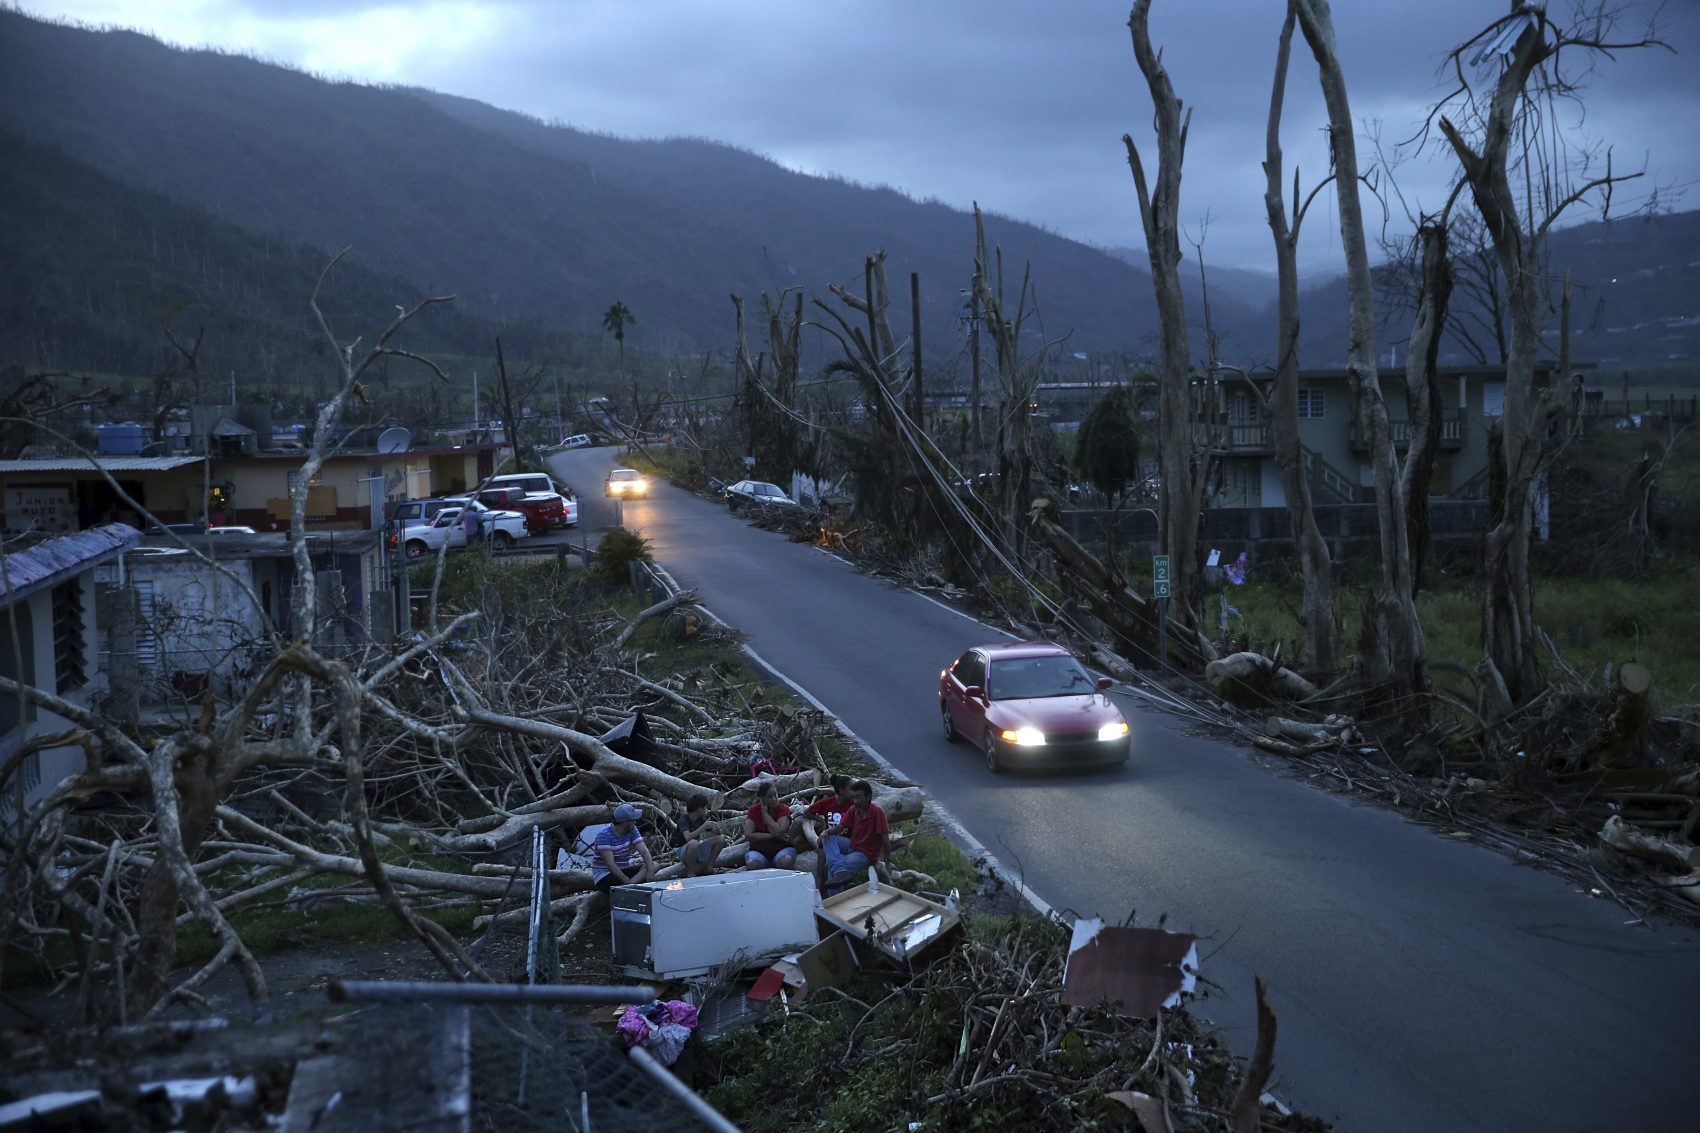 Neighbors sit on a couch outside their destroyed homes as sun sets in the aftermath of Hurricane Maria, in Yabucoa, Puerto Rico on Tuesday, Sept. 26. (Gerald Herbert/AP)